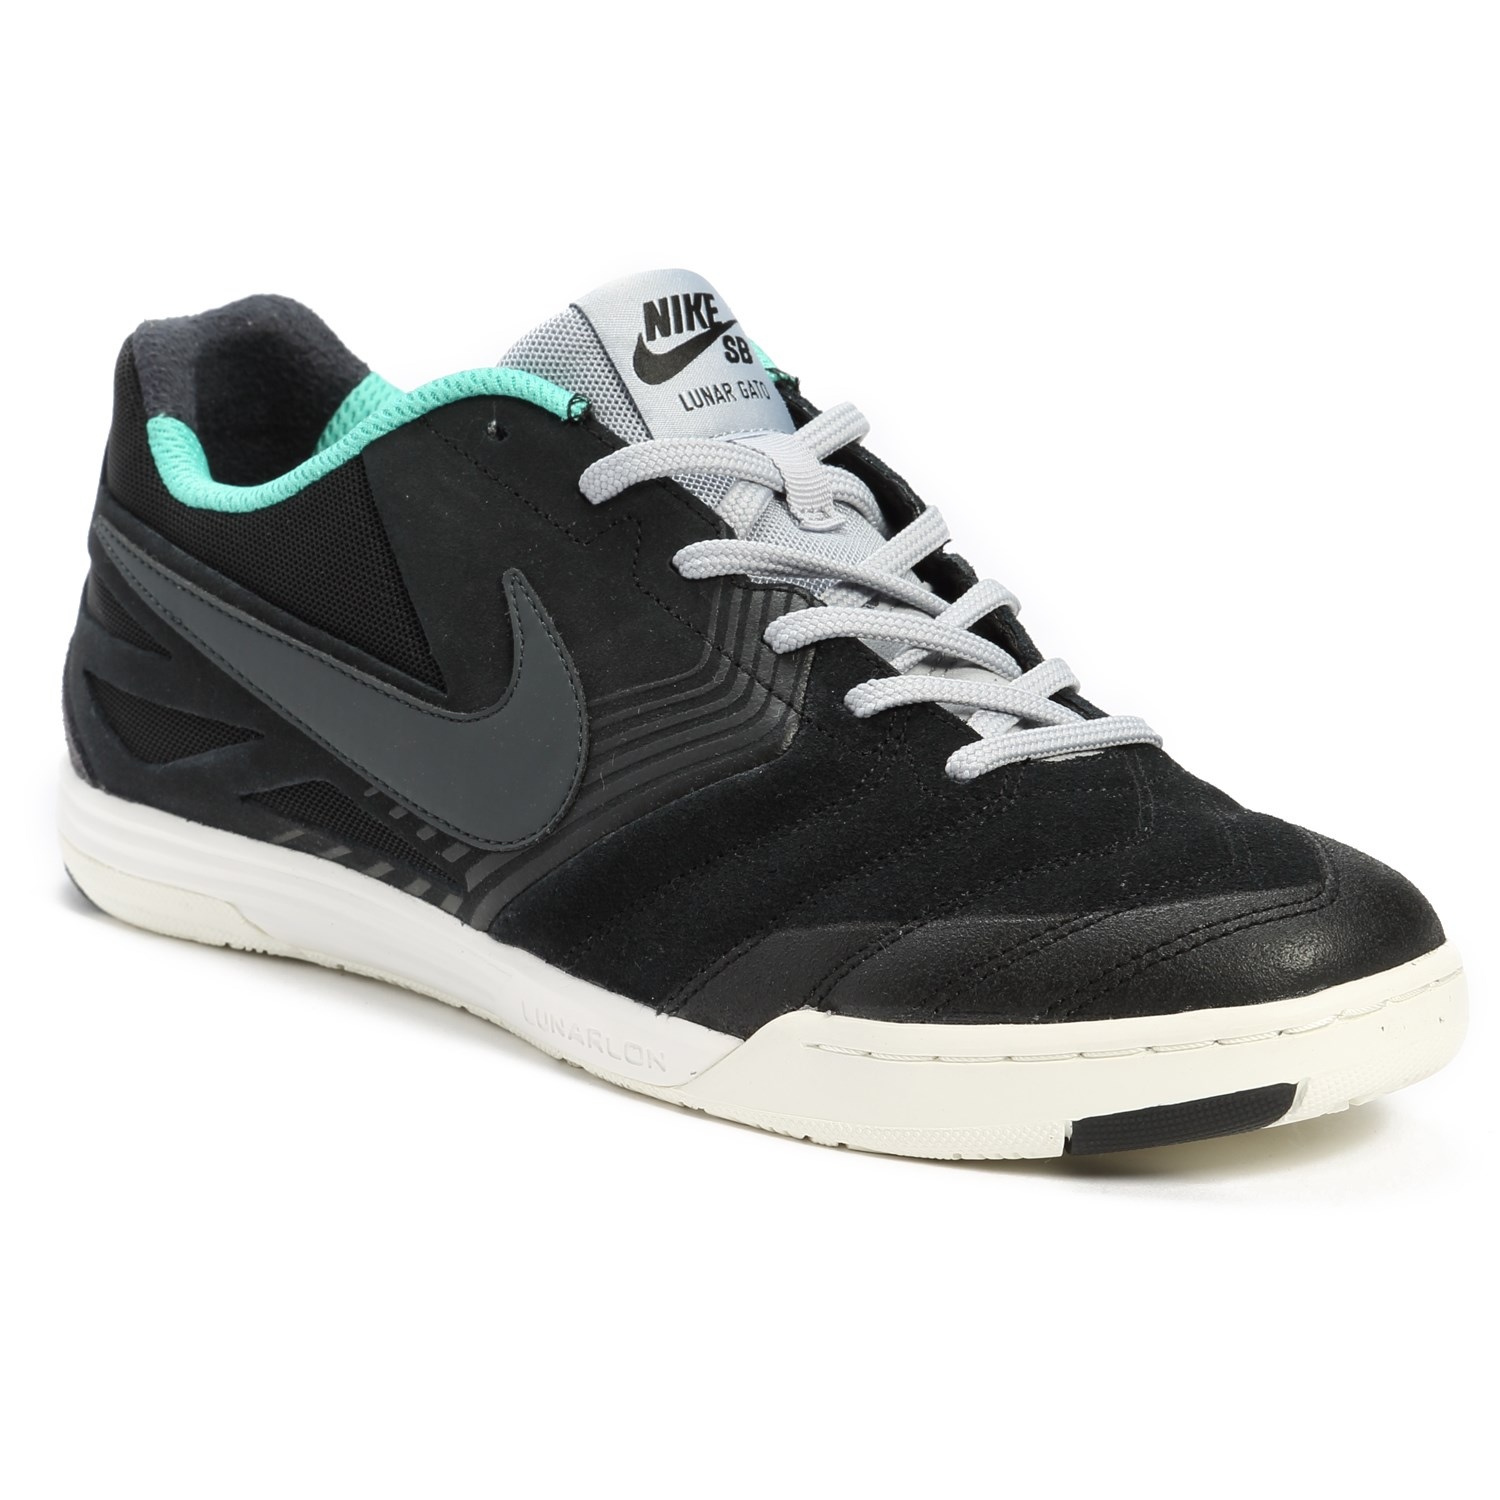 save off ff2ed a669f Nike SB Lunar Gato Shoes   evo